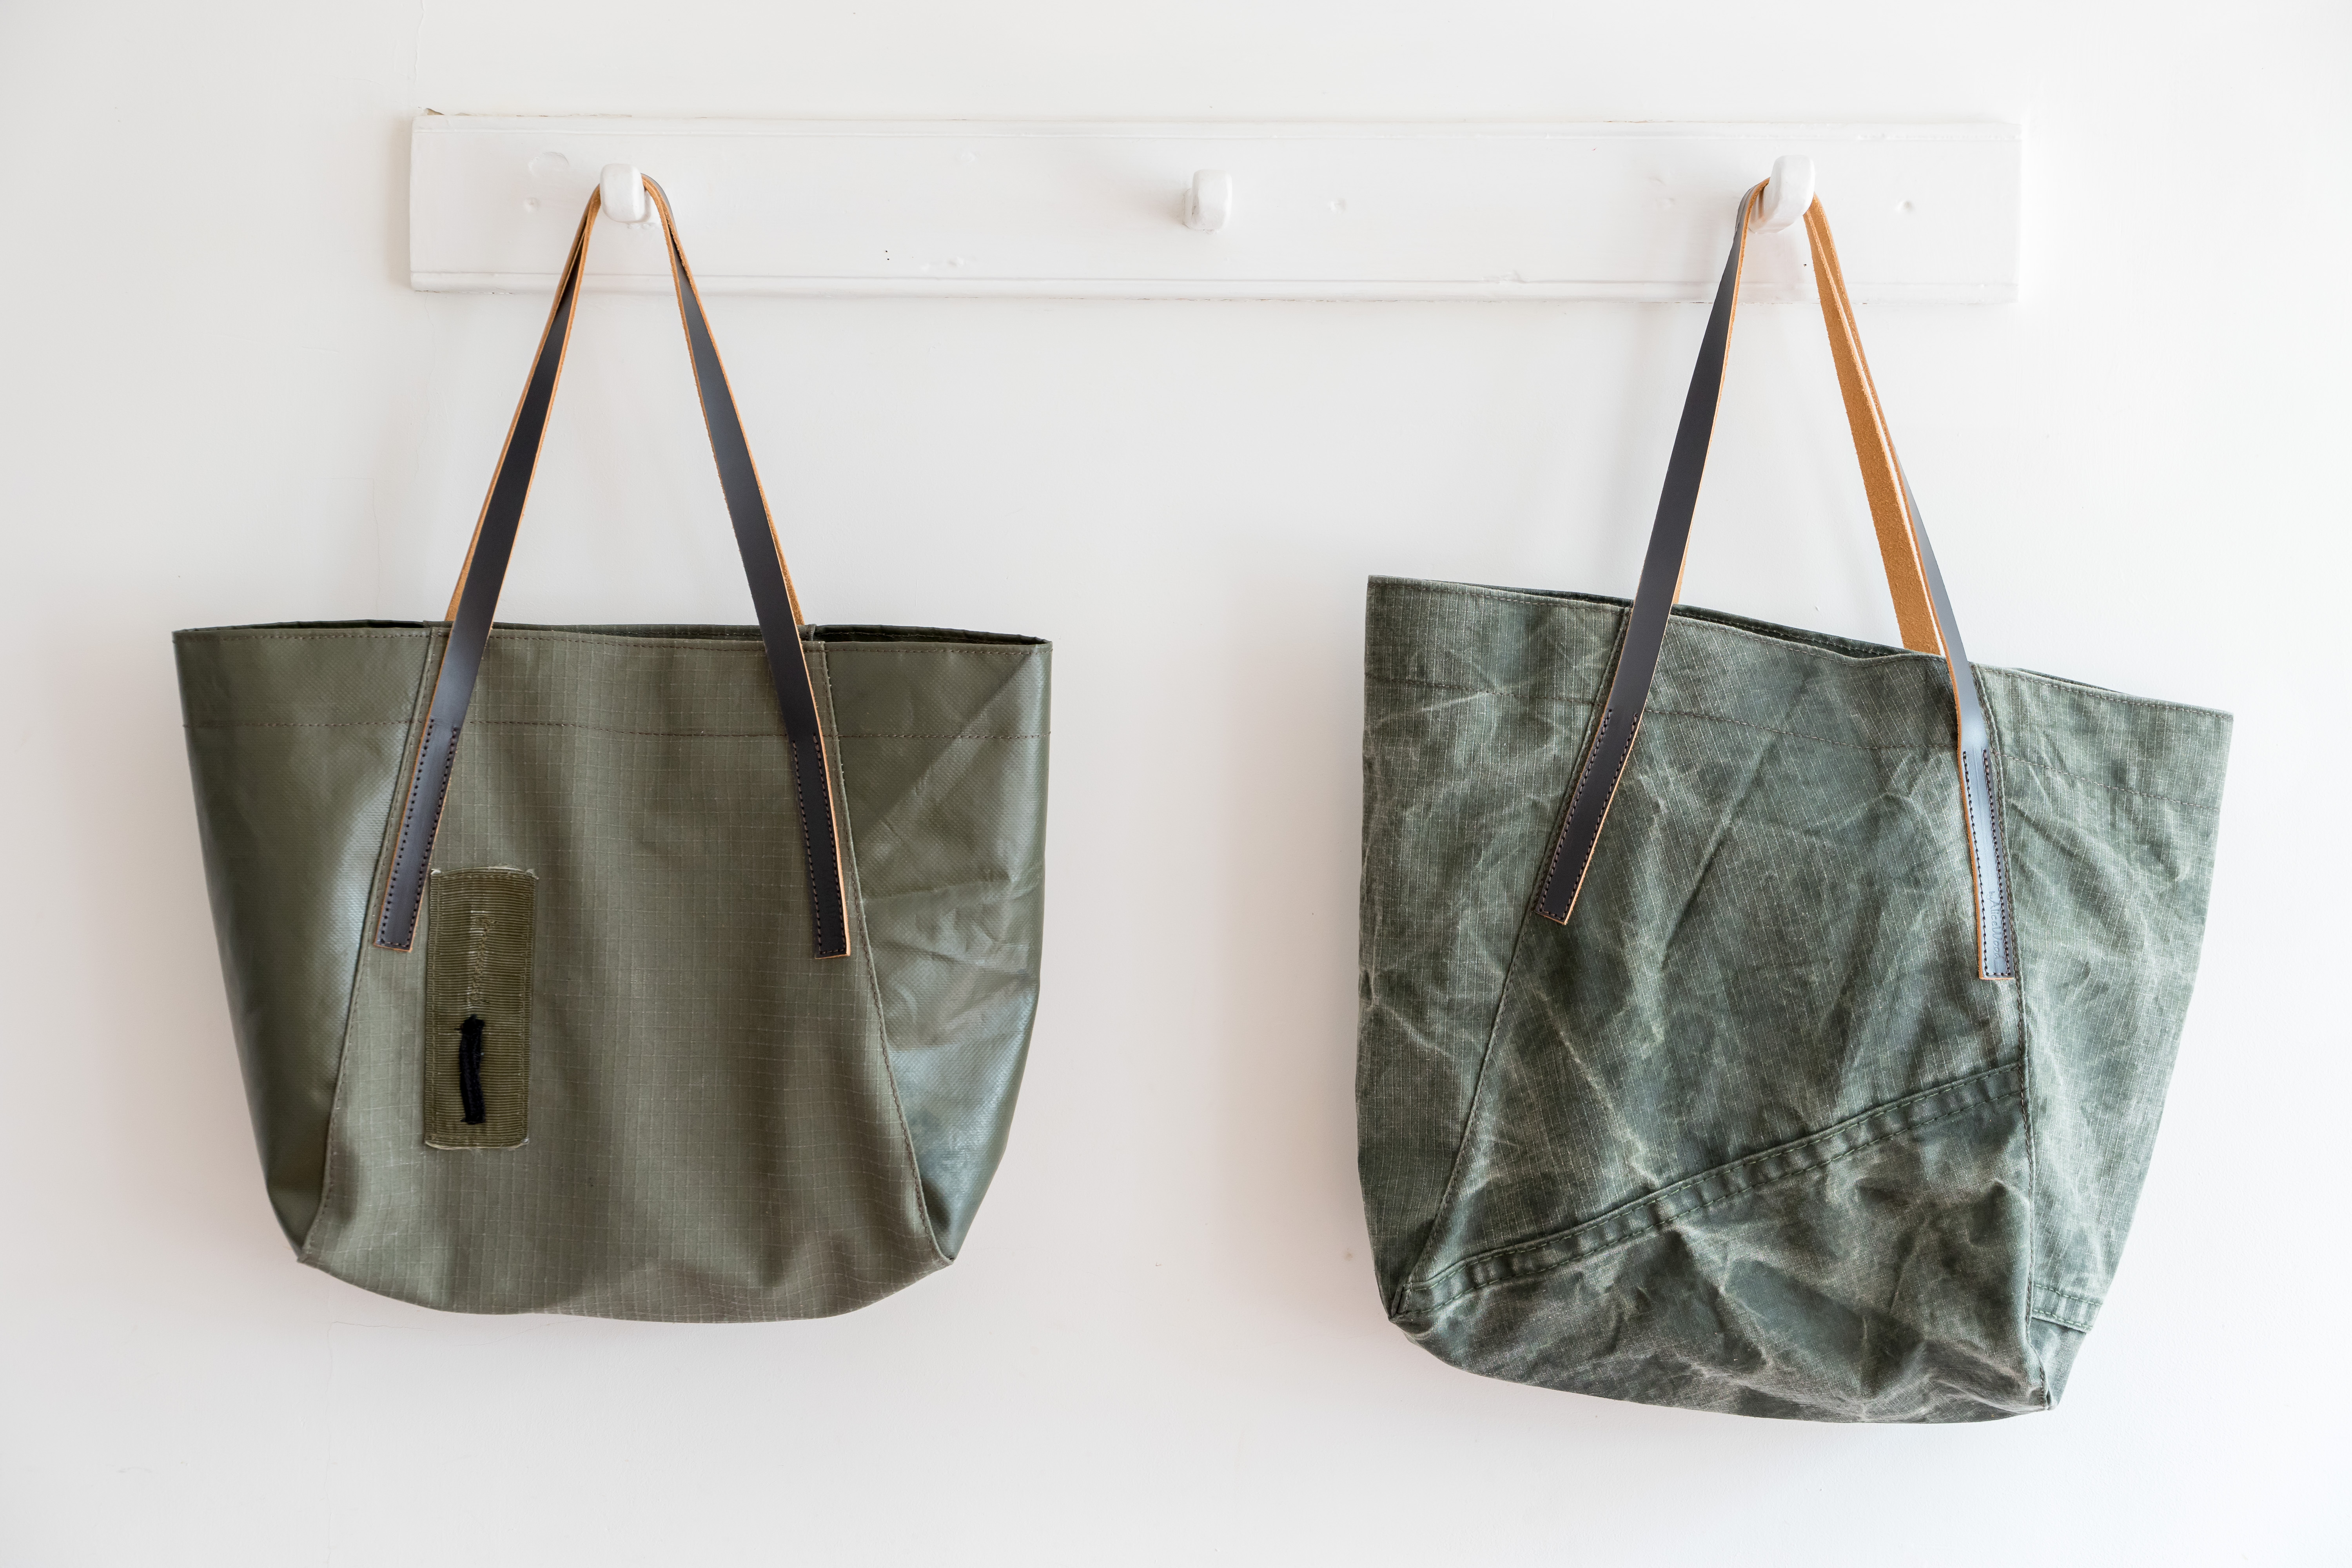 Recycled Army Tote Bag